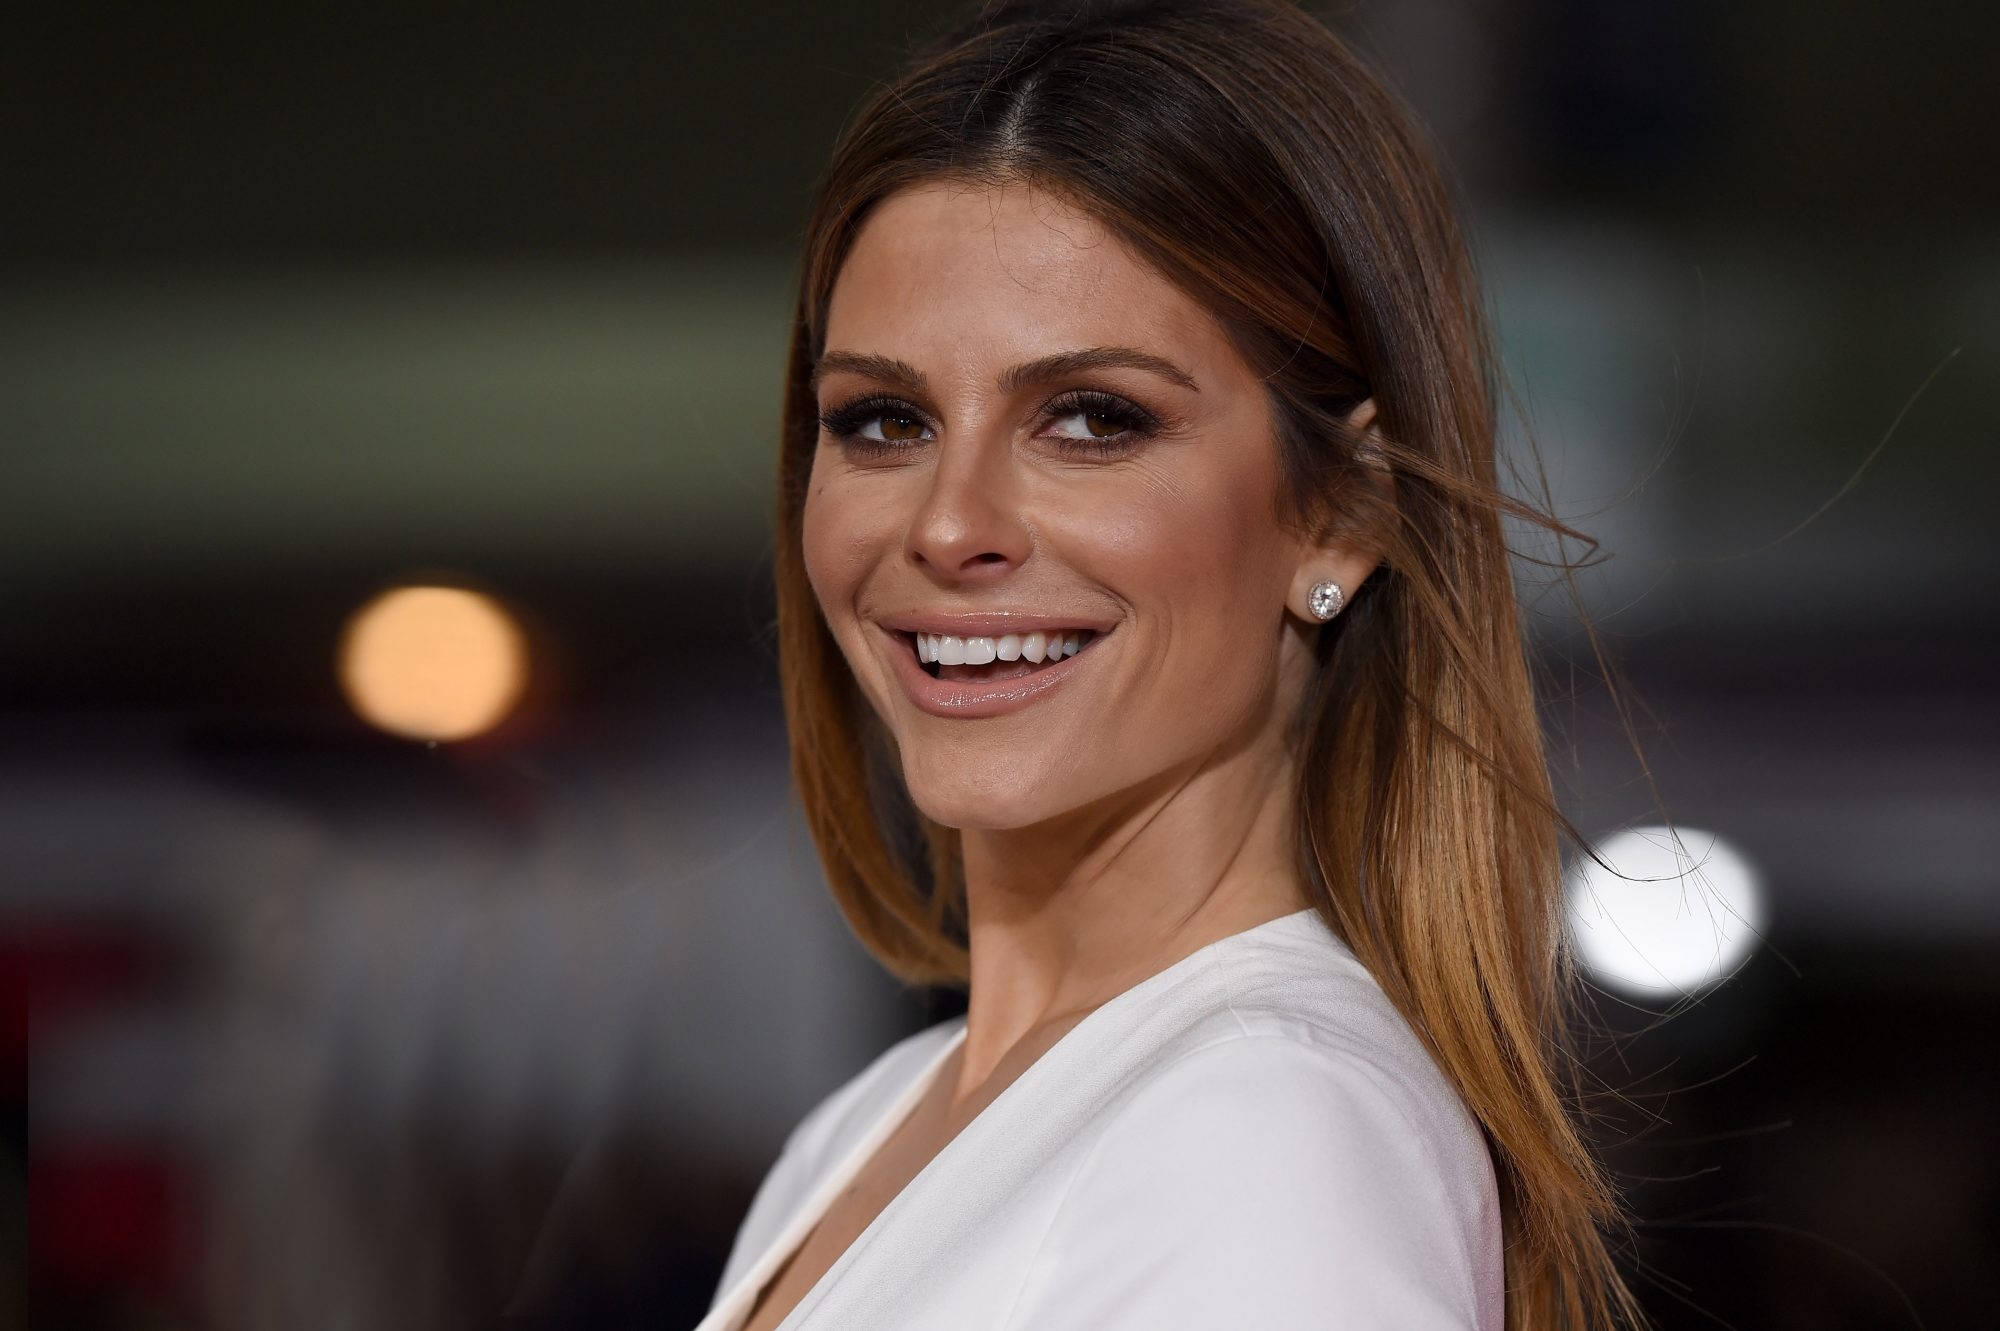 Maria Menounos Leaving E! News After Brain Tumor Diagnosis: 'I'm Gonna Take Some Time and See What's Next'